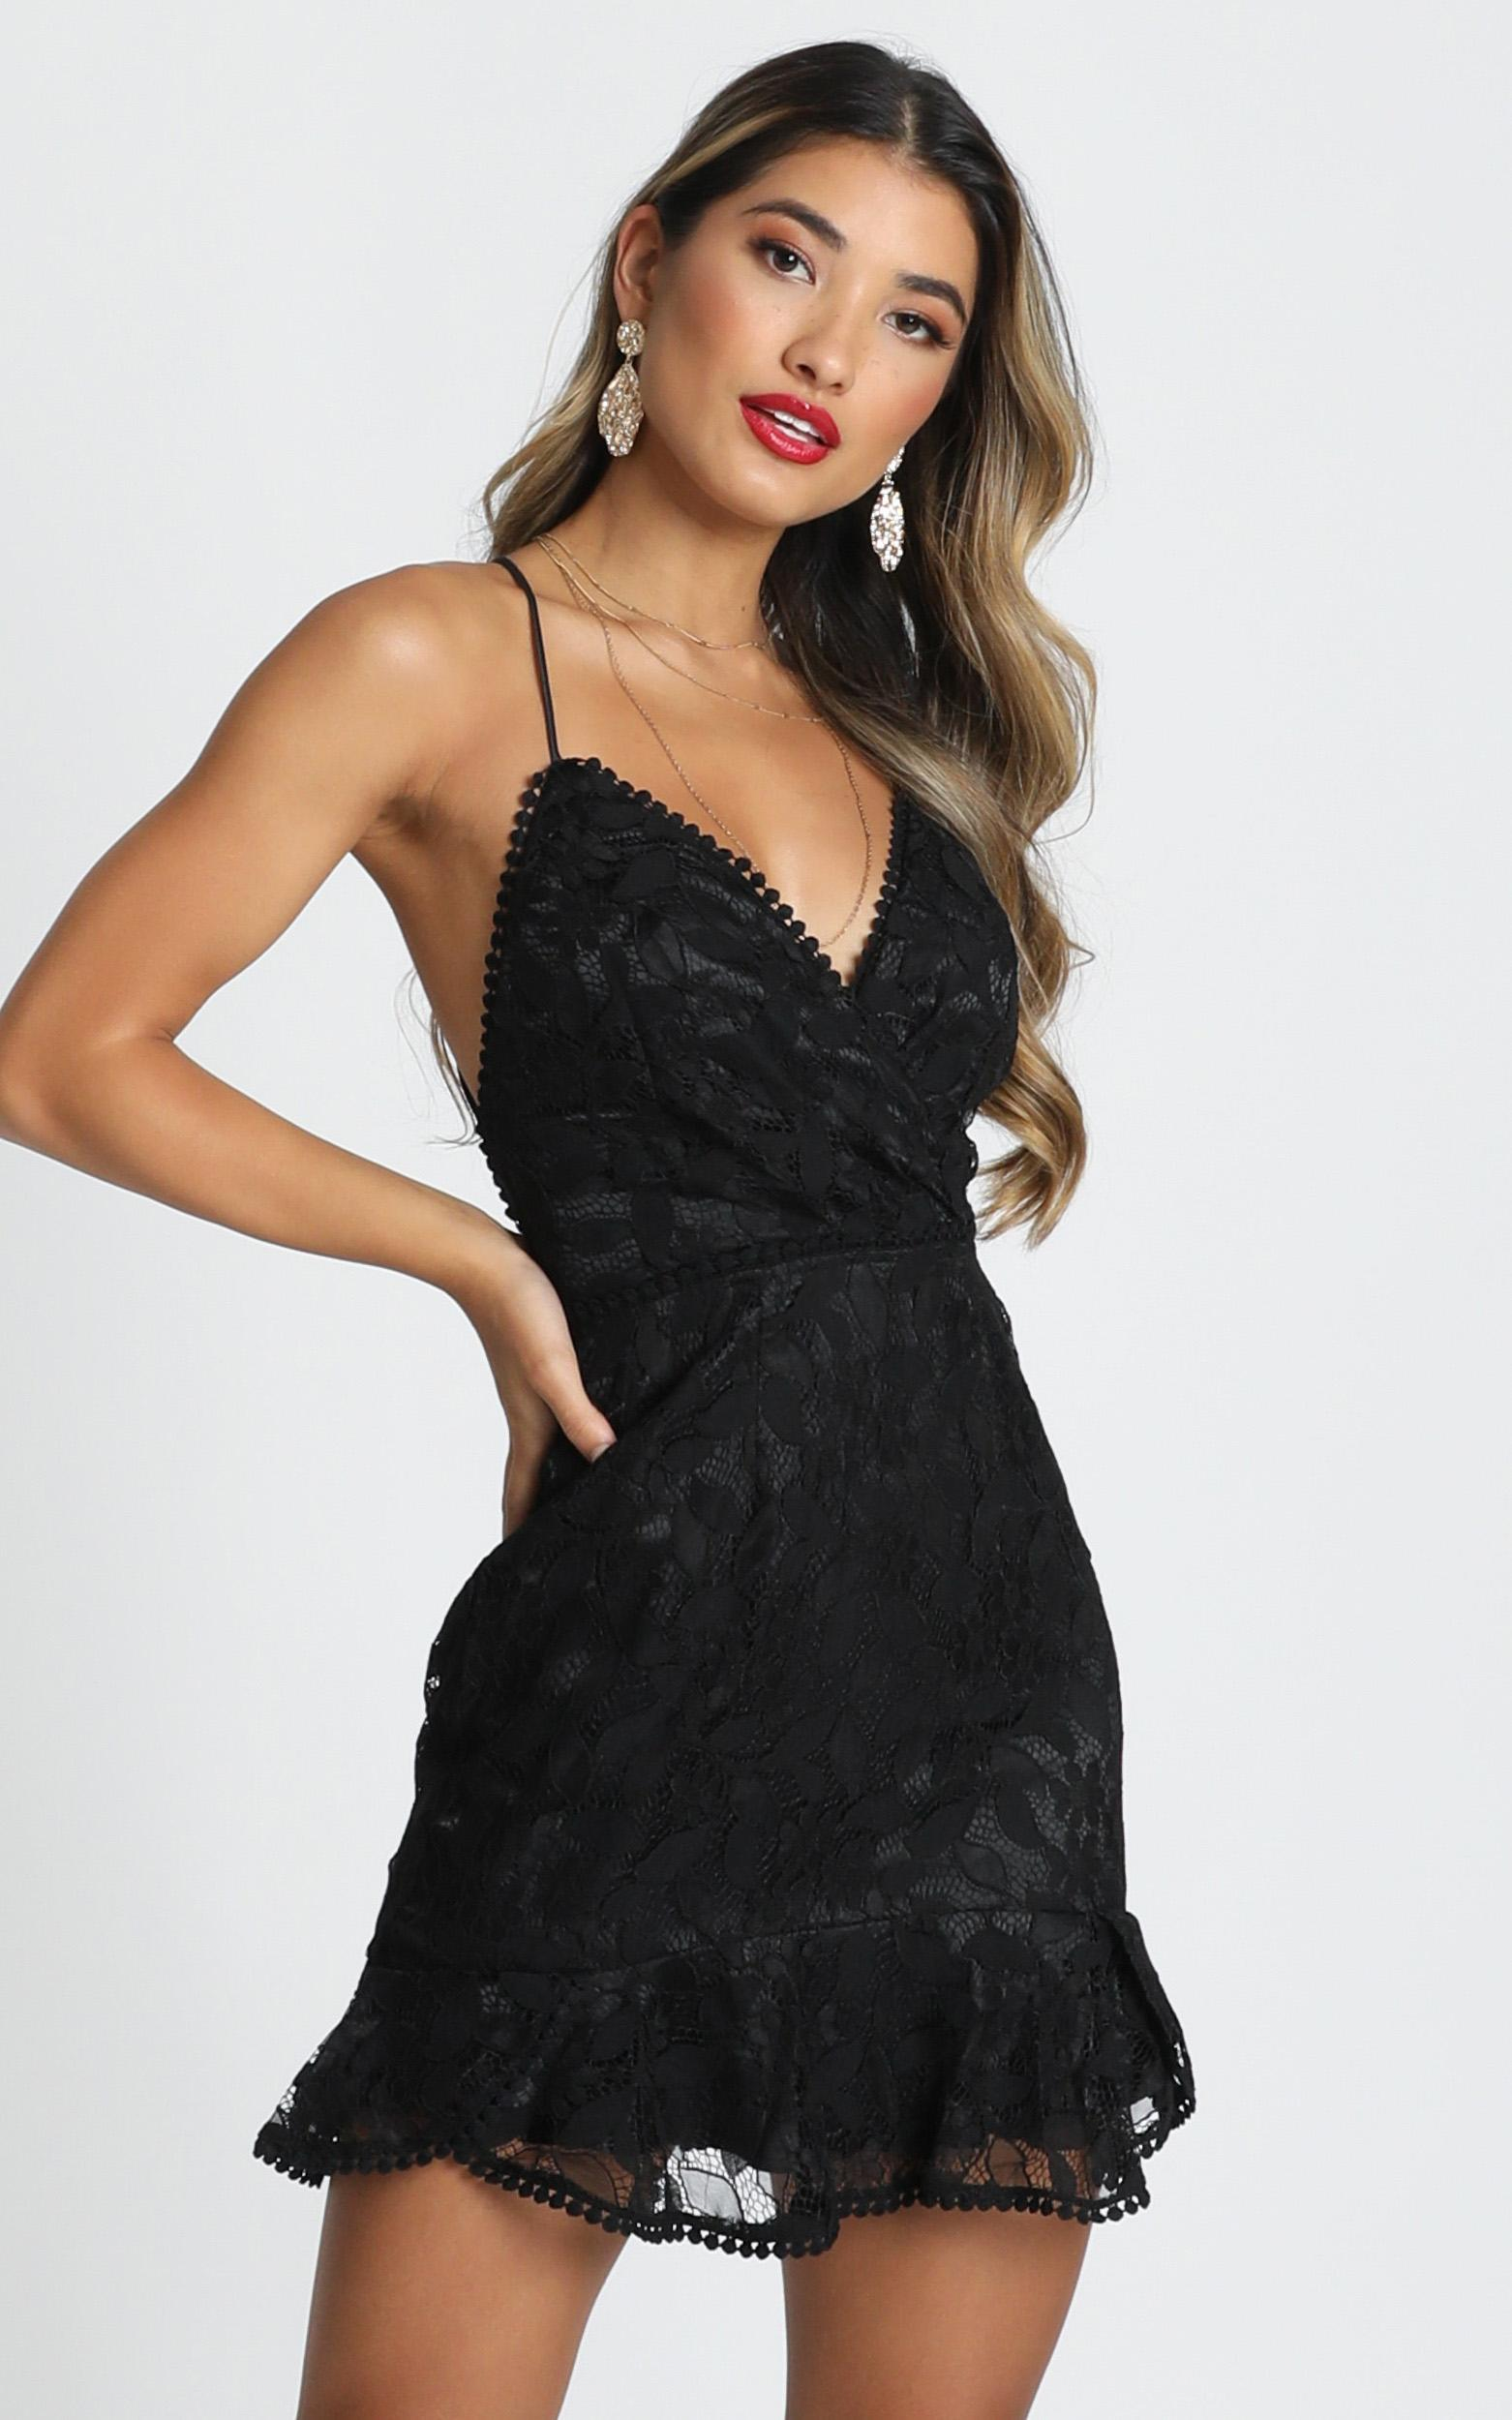 Find My Feet Dress in black lace - 14 (XL), Black, hi-res image number null